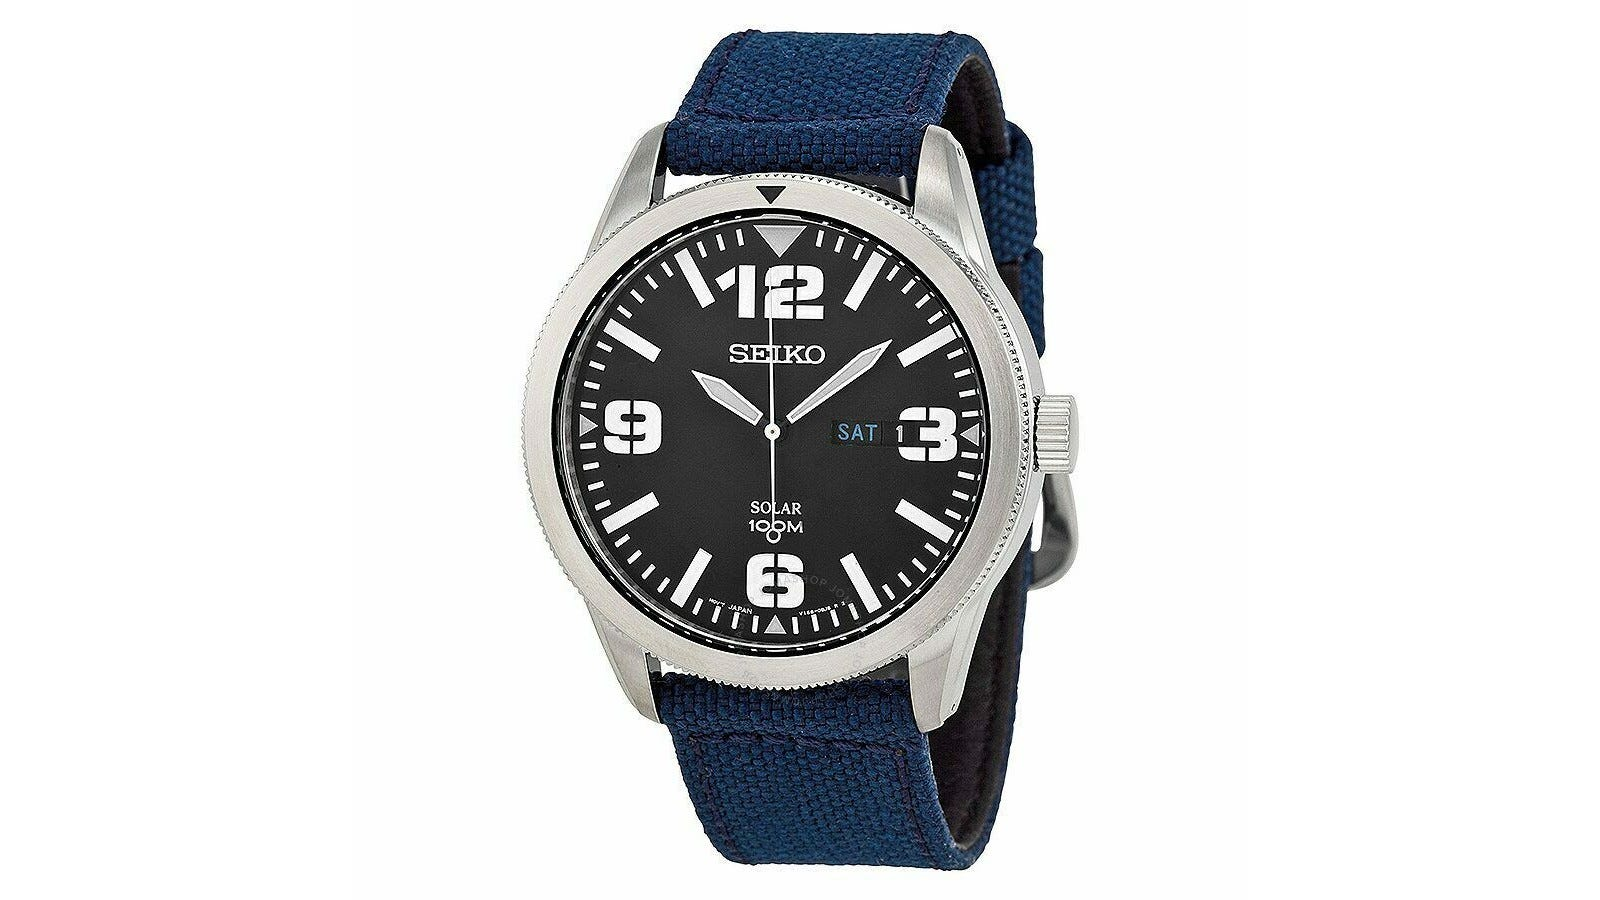 a sports watch with a navy blue elastic band and black numbered watch face